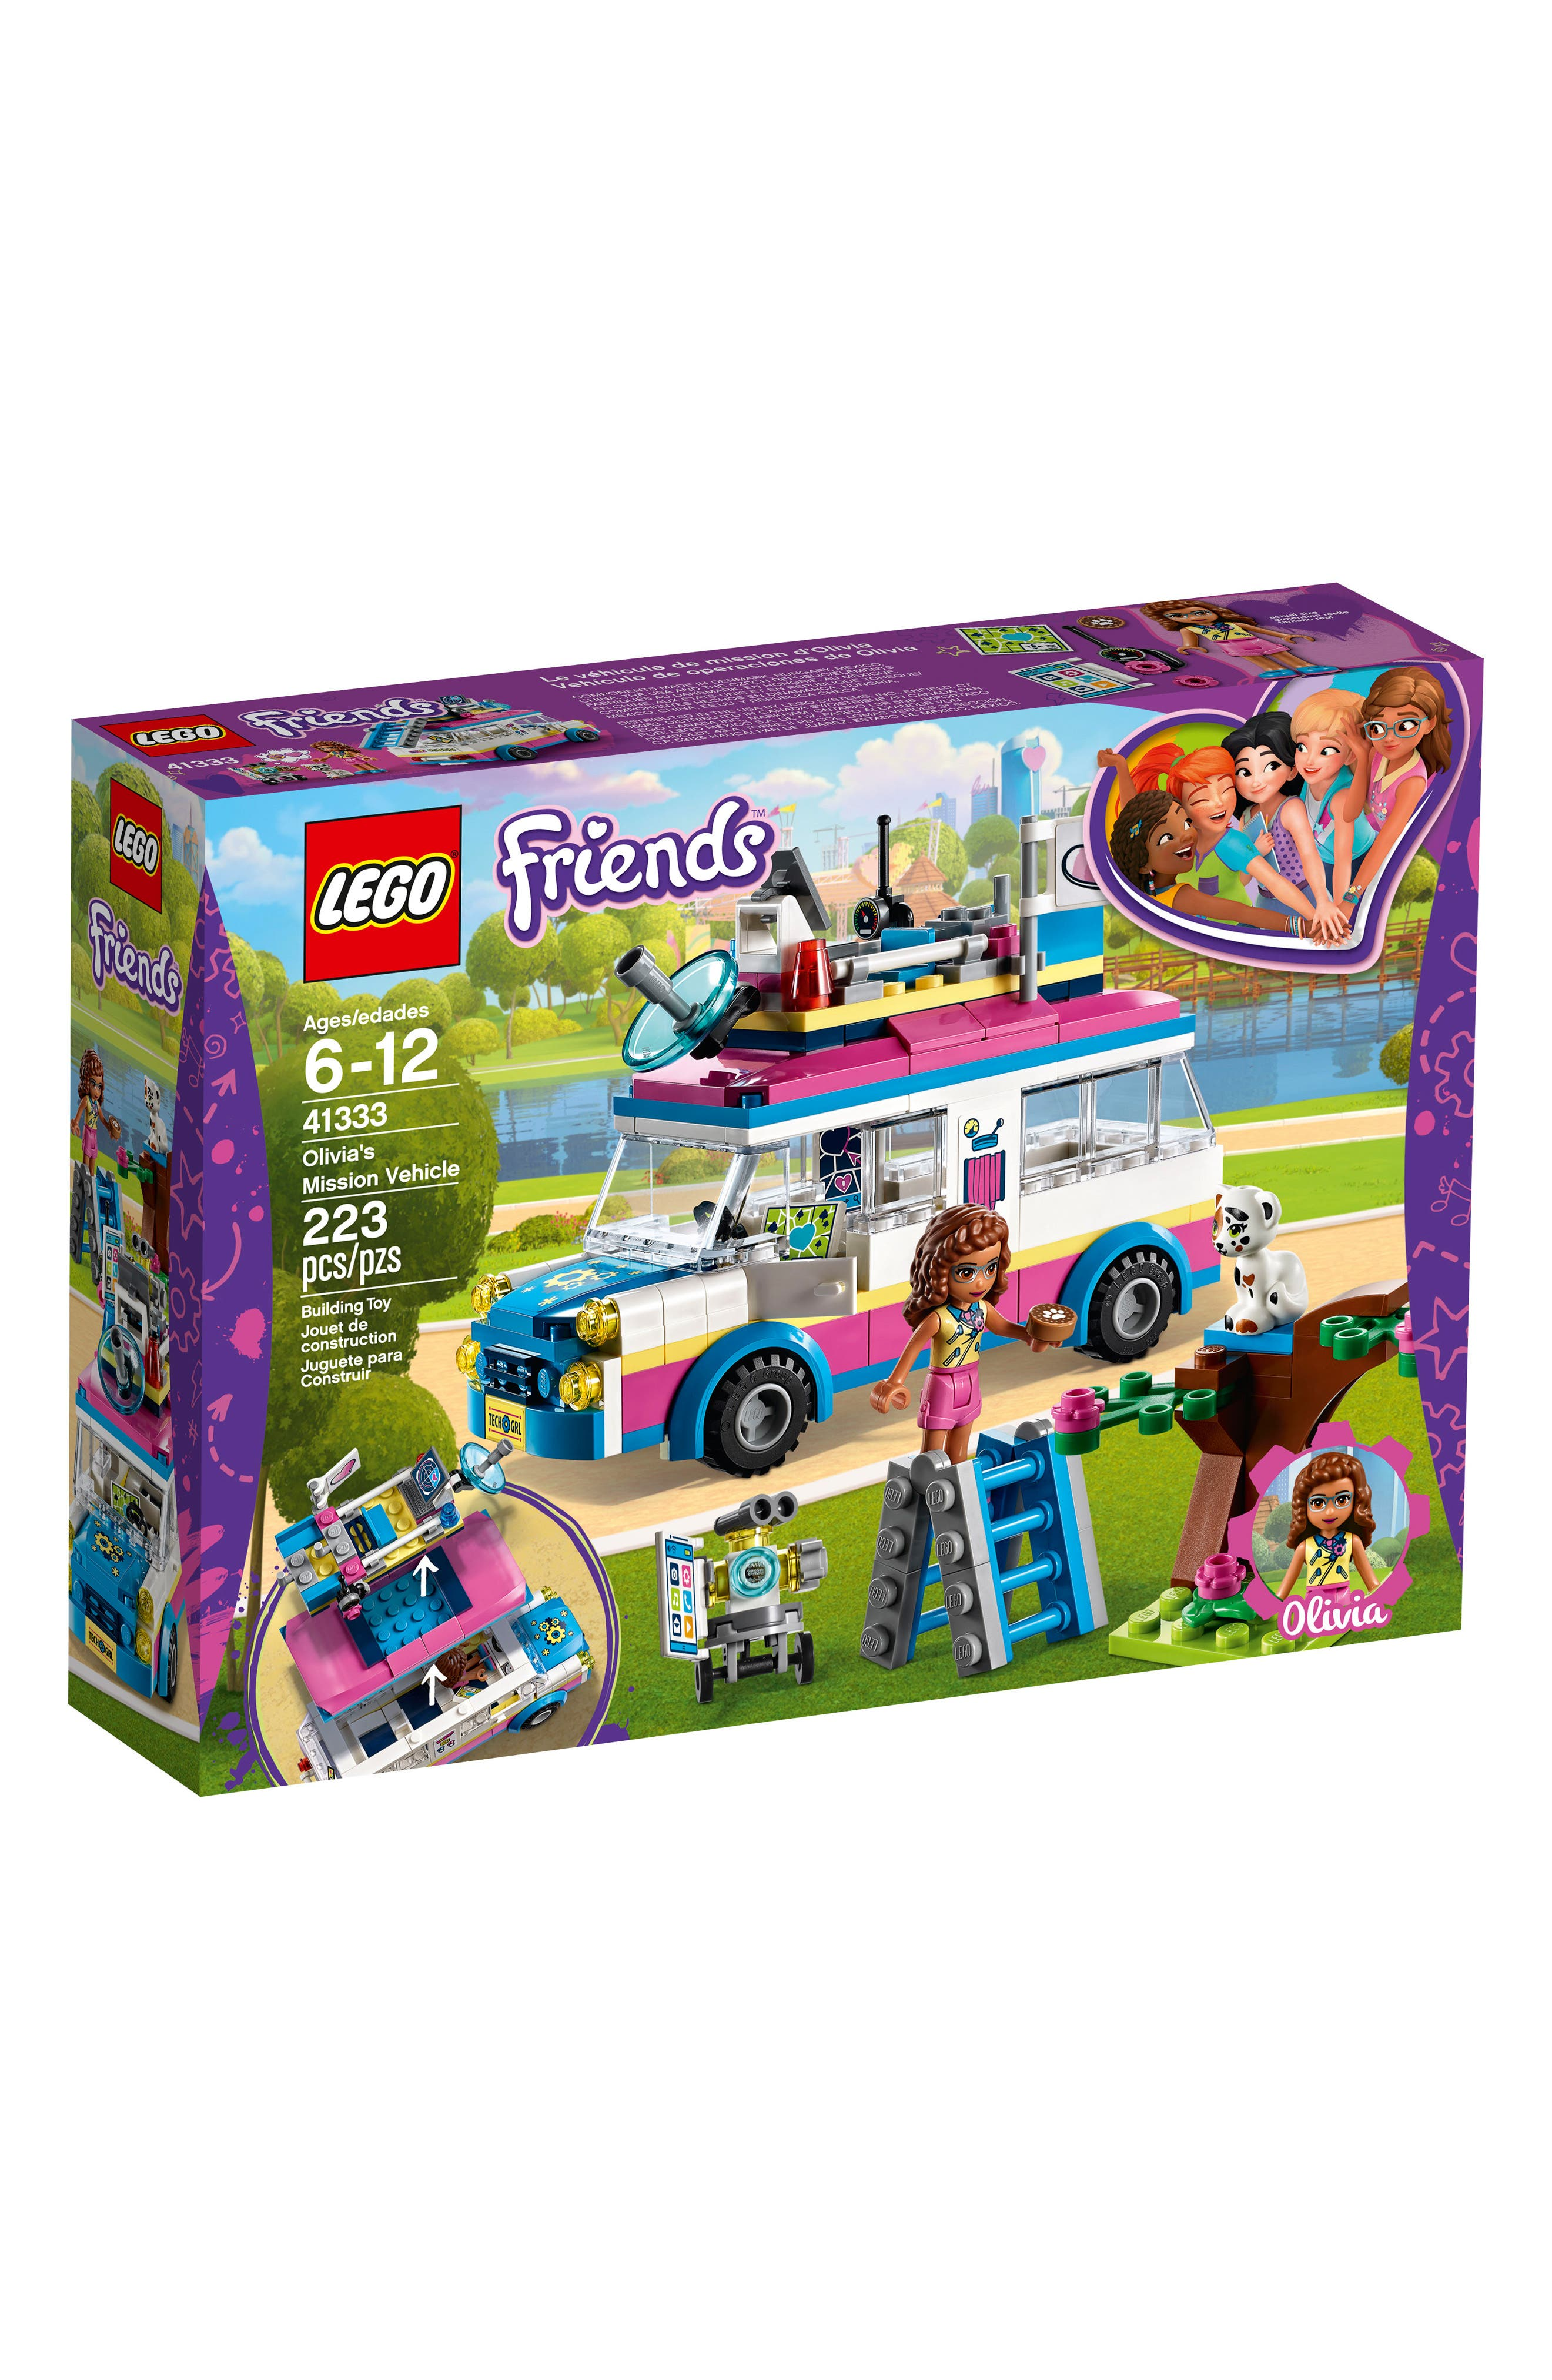 Friends Olivia's Mission Vehicle - 41333,                             Main thumbnail 1, color,                             650